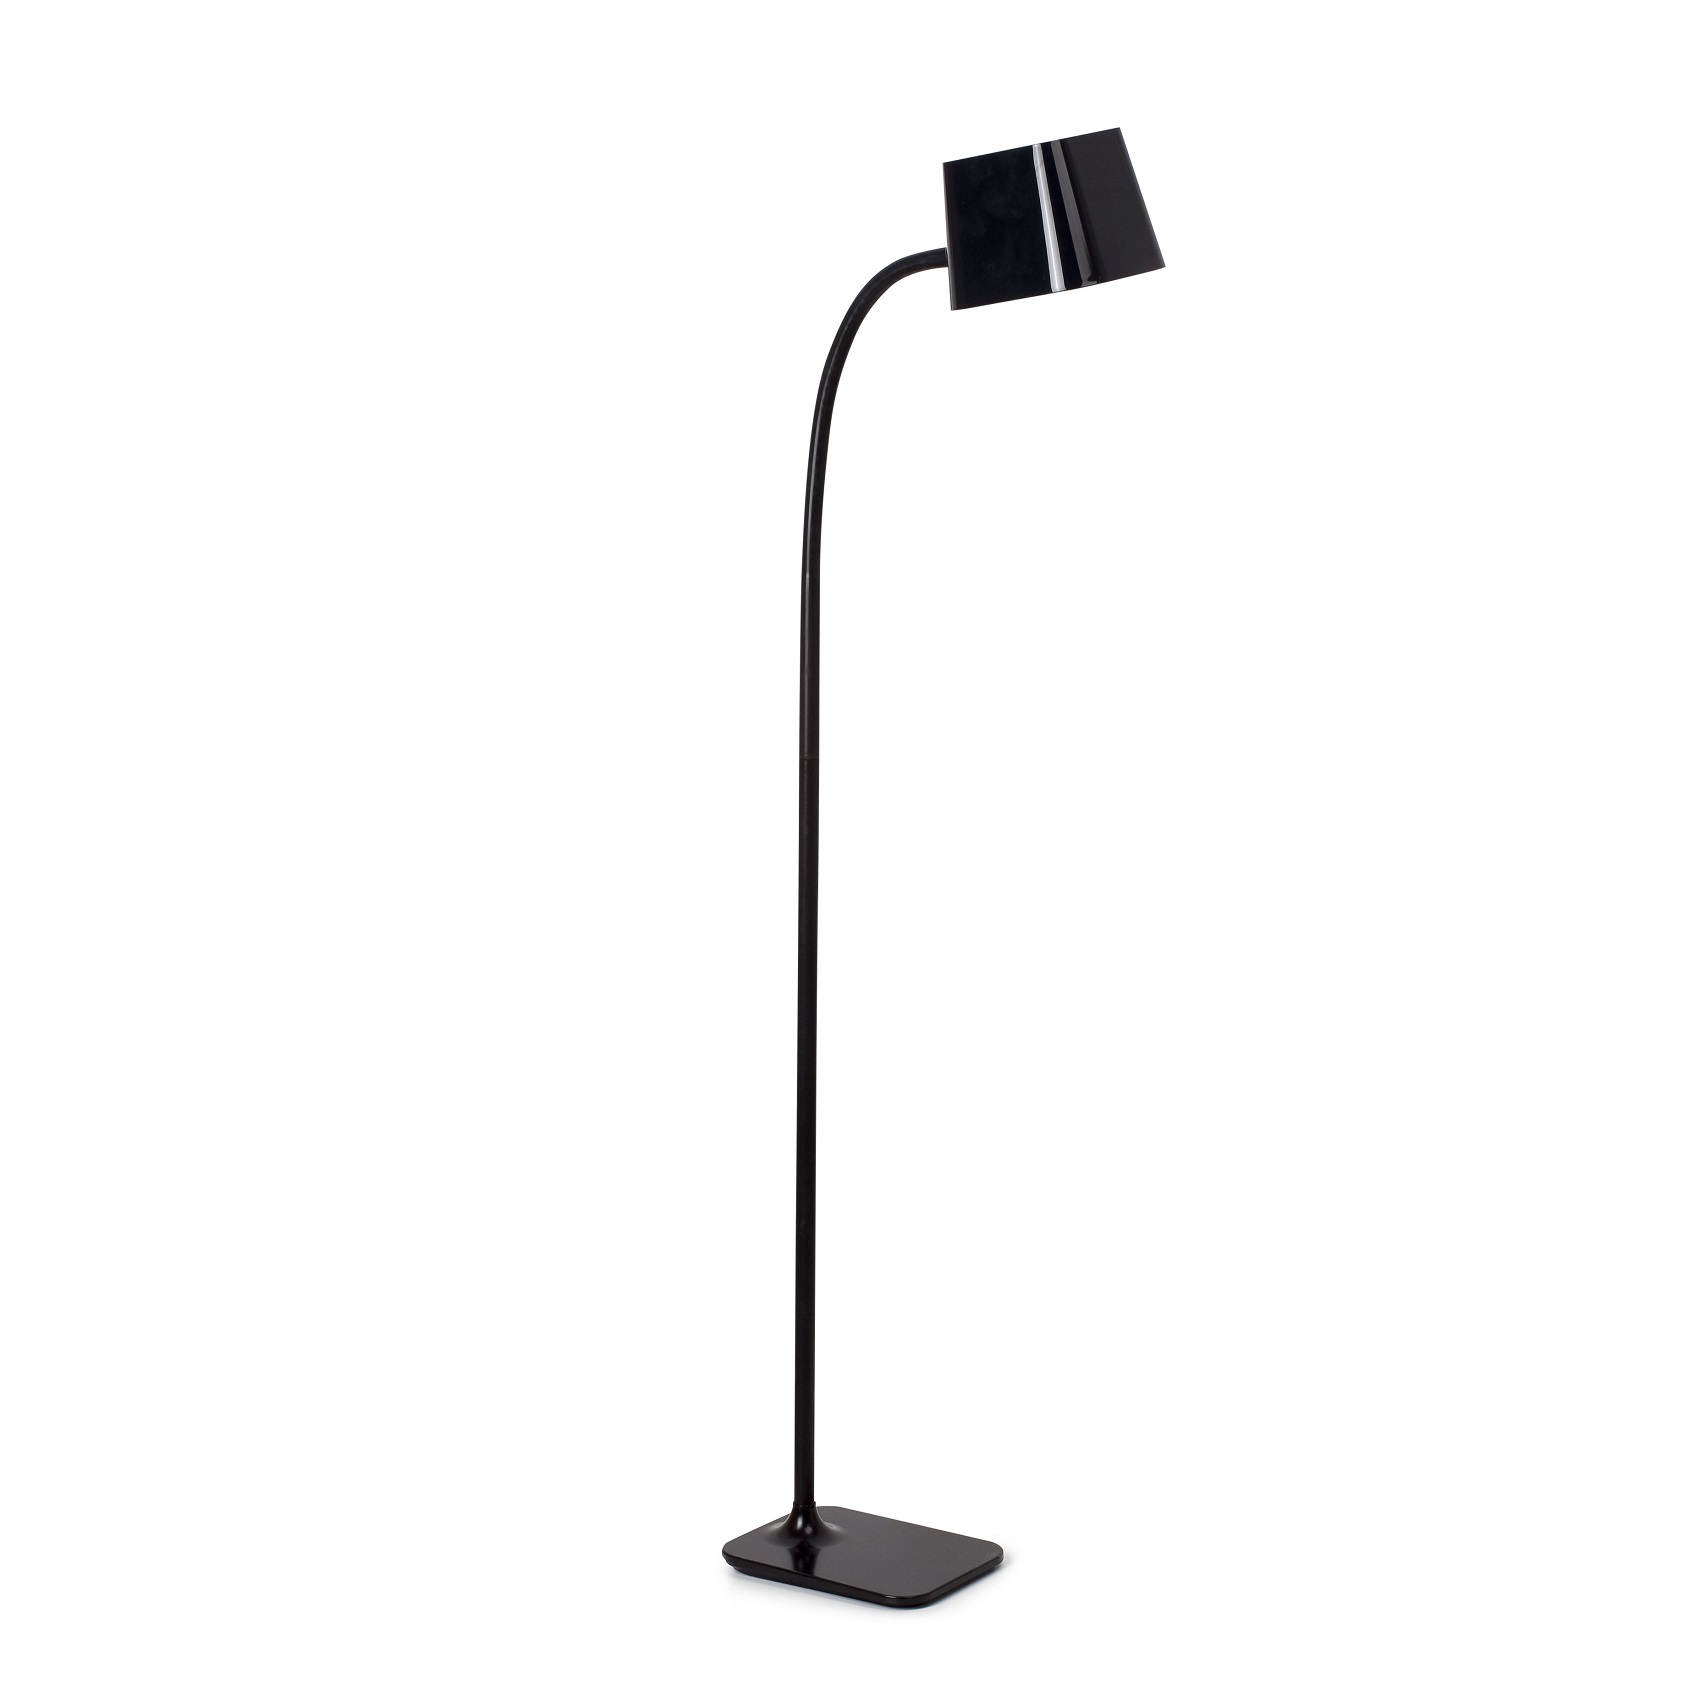 Lampadaire design int rieur flexi faro noir for Lampadaire interieur design